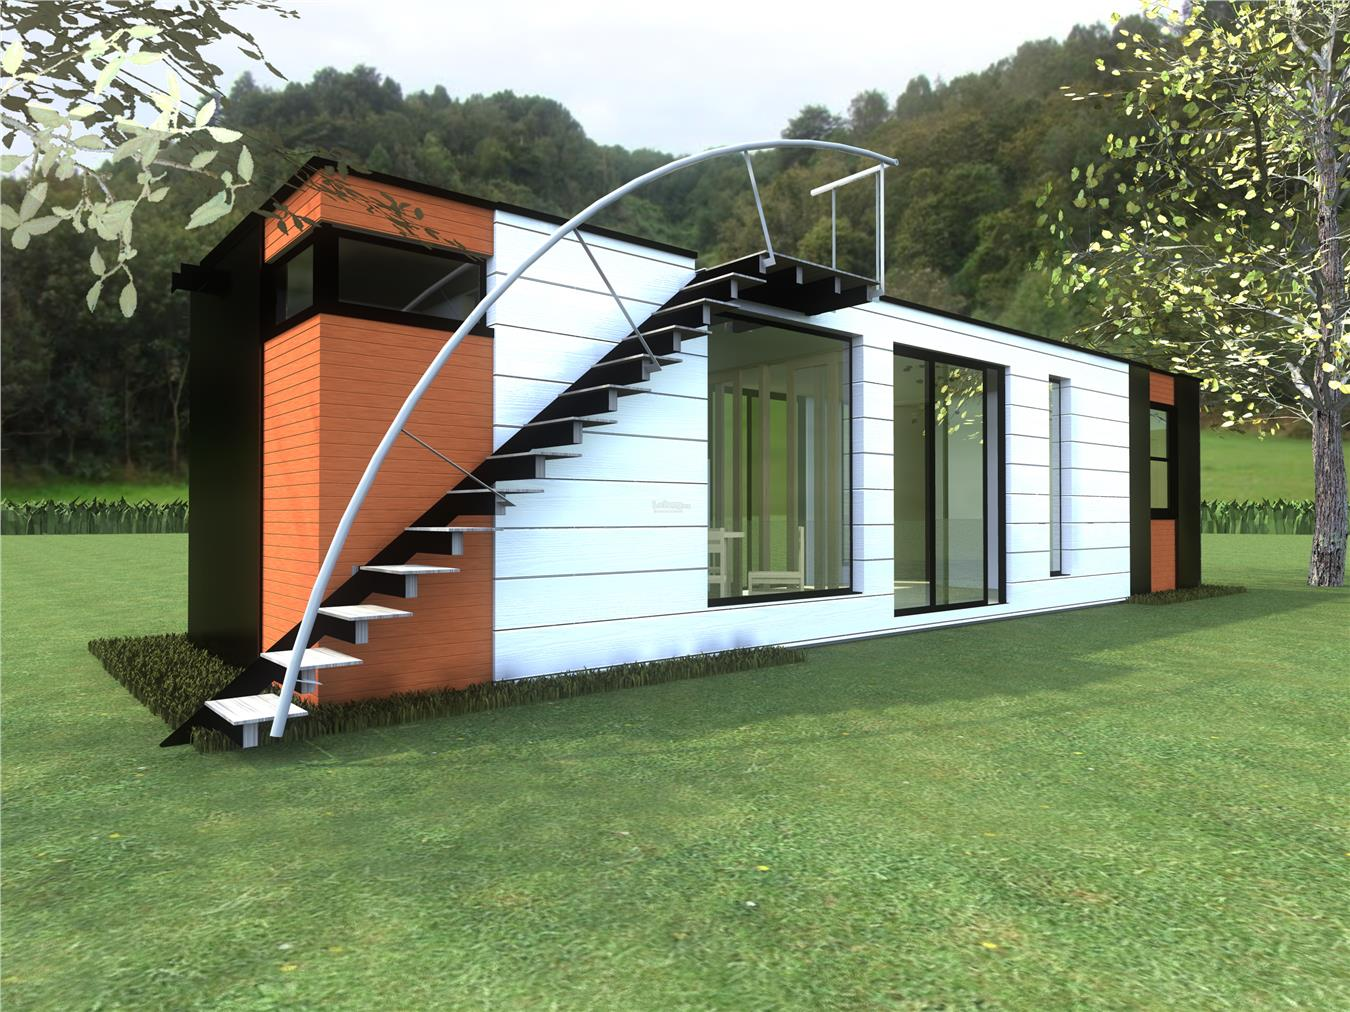 Terrific Modular Prefab Small House Design Build Service Download Free Architecture Designs Scobabritishbridgeorg